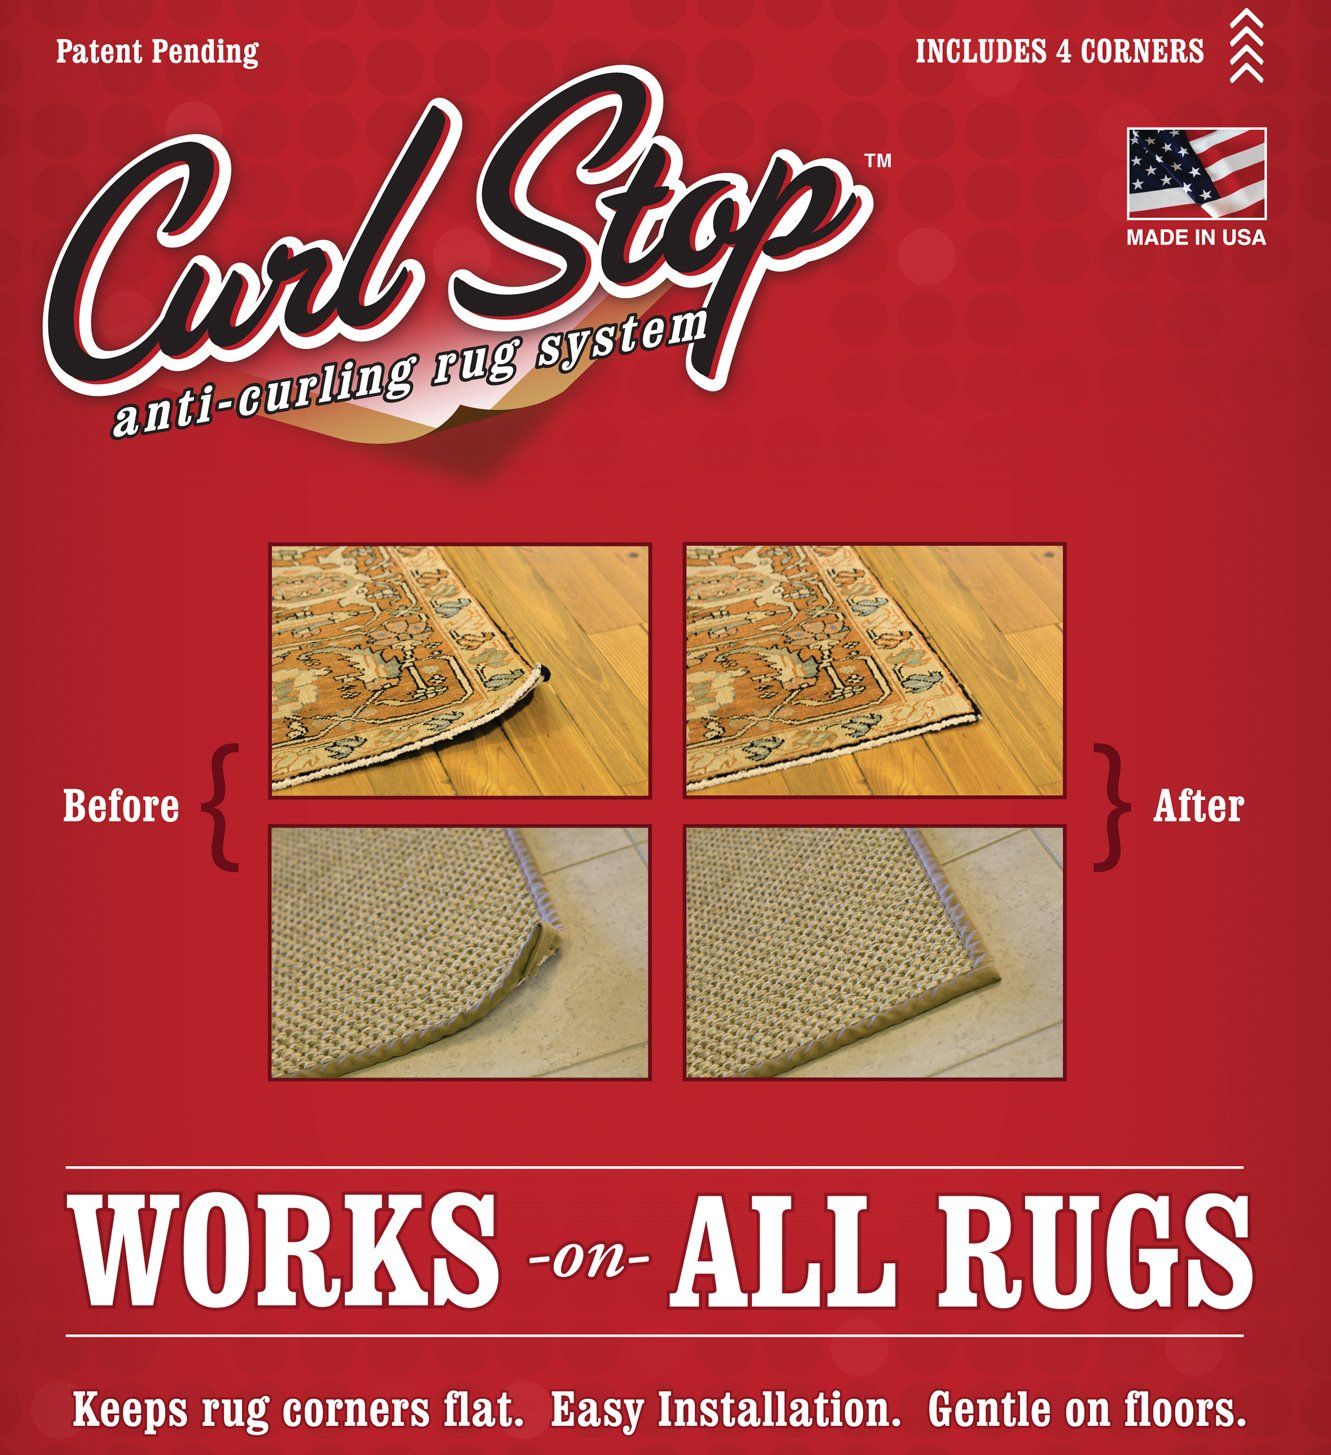 curl stop anti curling rug system pack of 4 corners